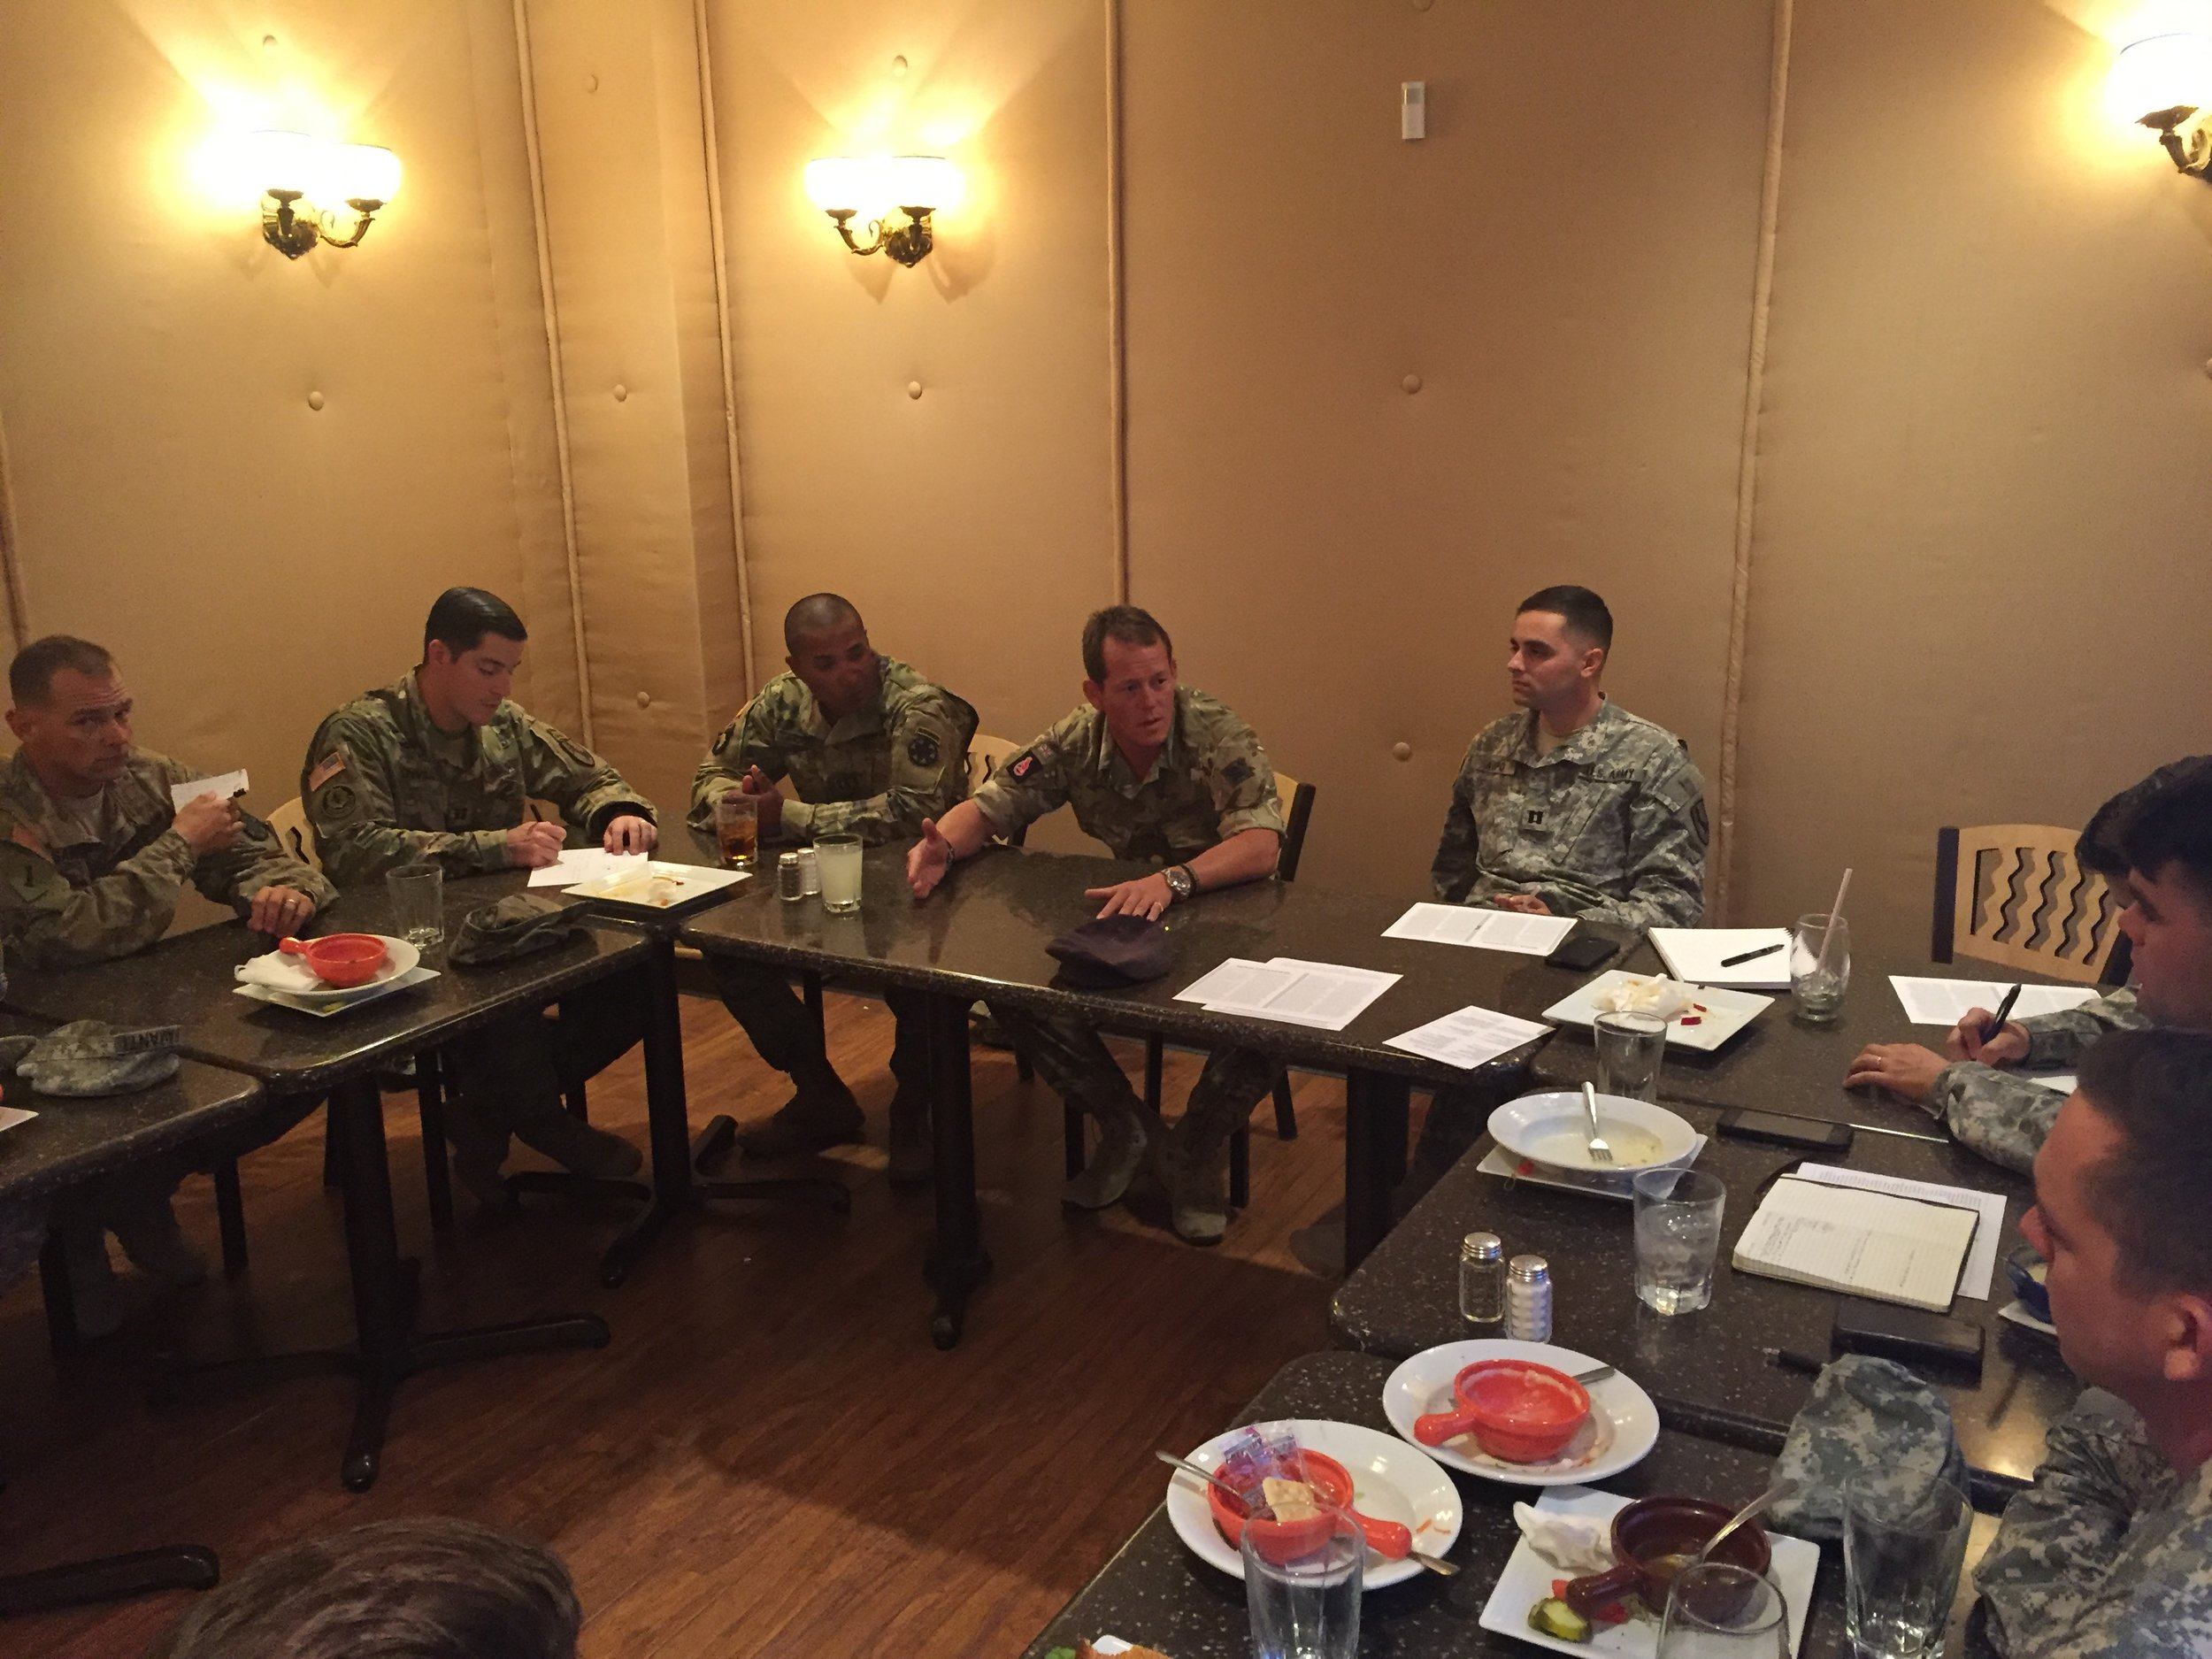 The Irwin Drink and Think meets for lunch at a local restaurant on post. A British Army Major describes the British Army's operations process.